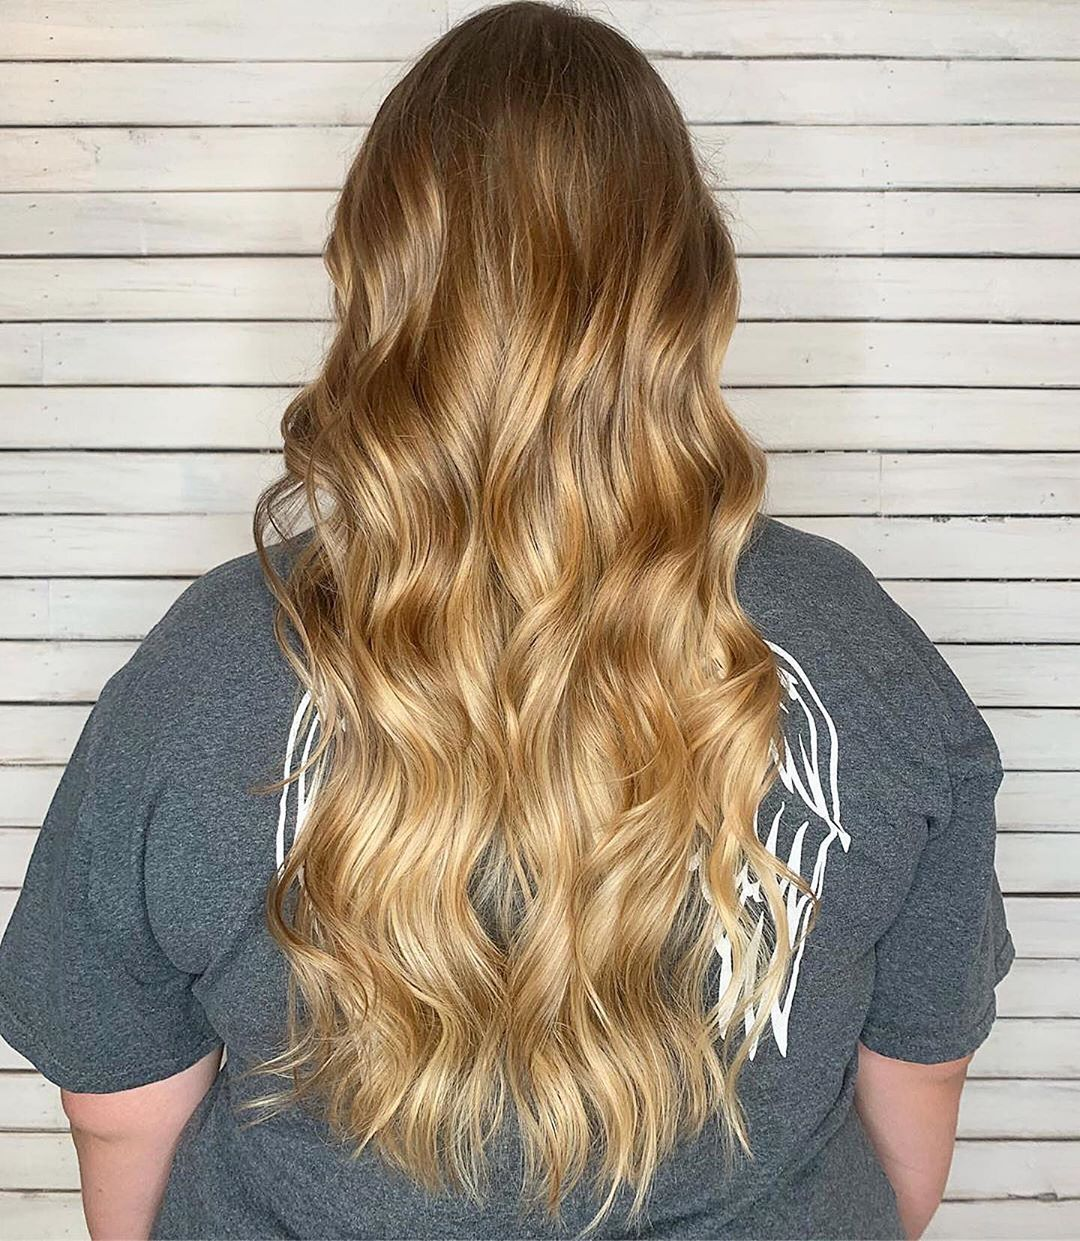 30 Likes 3 Comments The Beaux Monde Salon Spa Tbm Salon On Instagram Big Changes For This Momma Today Today We Bright With Images Hair Her Hair Blonde Balayage